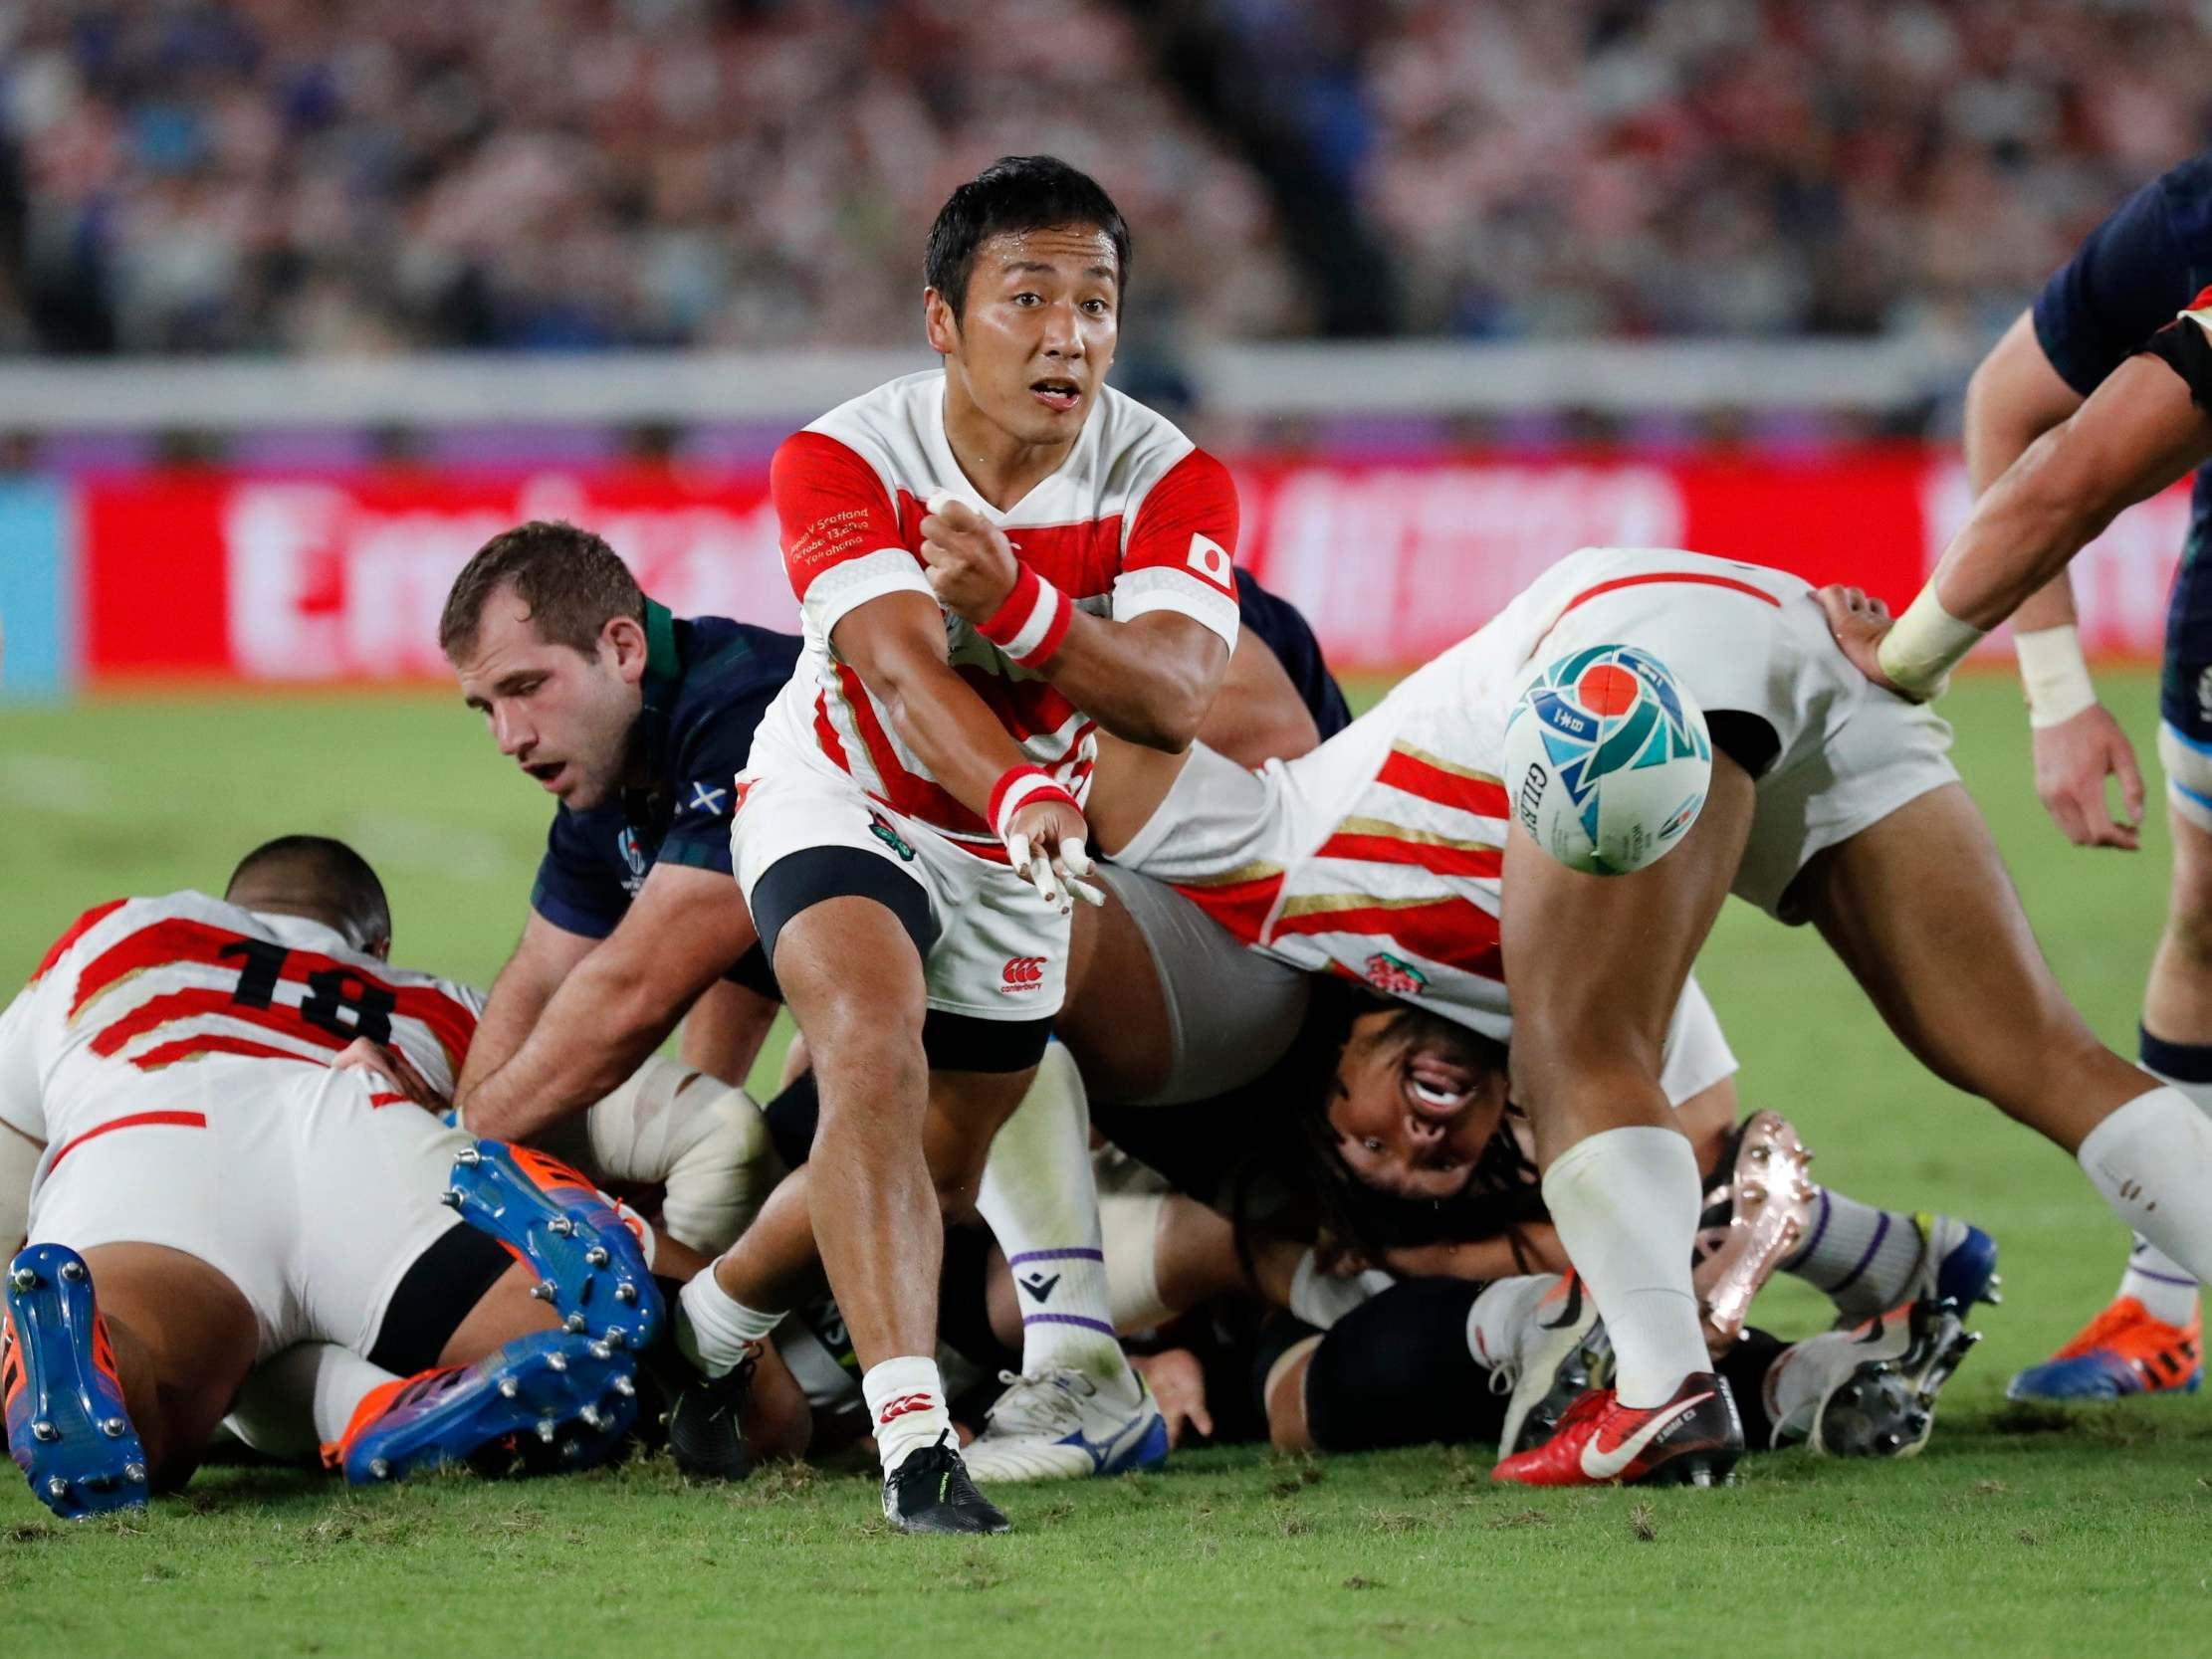 Rugby World Cup 2019: Japan may be capturing the imagination, but they might also save the sport